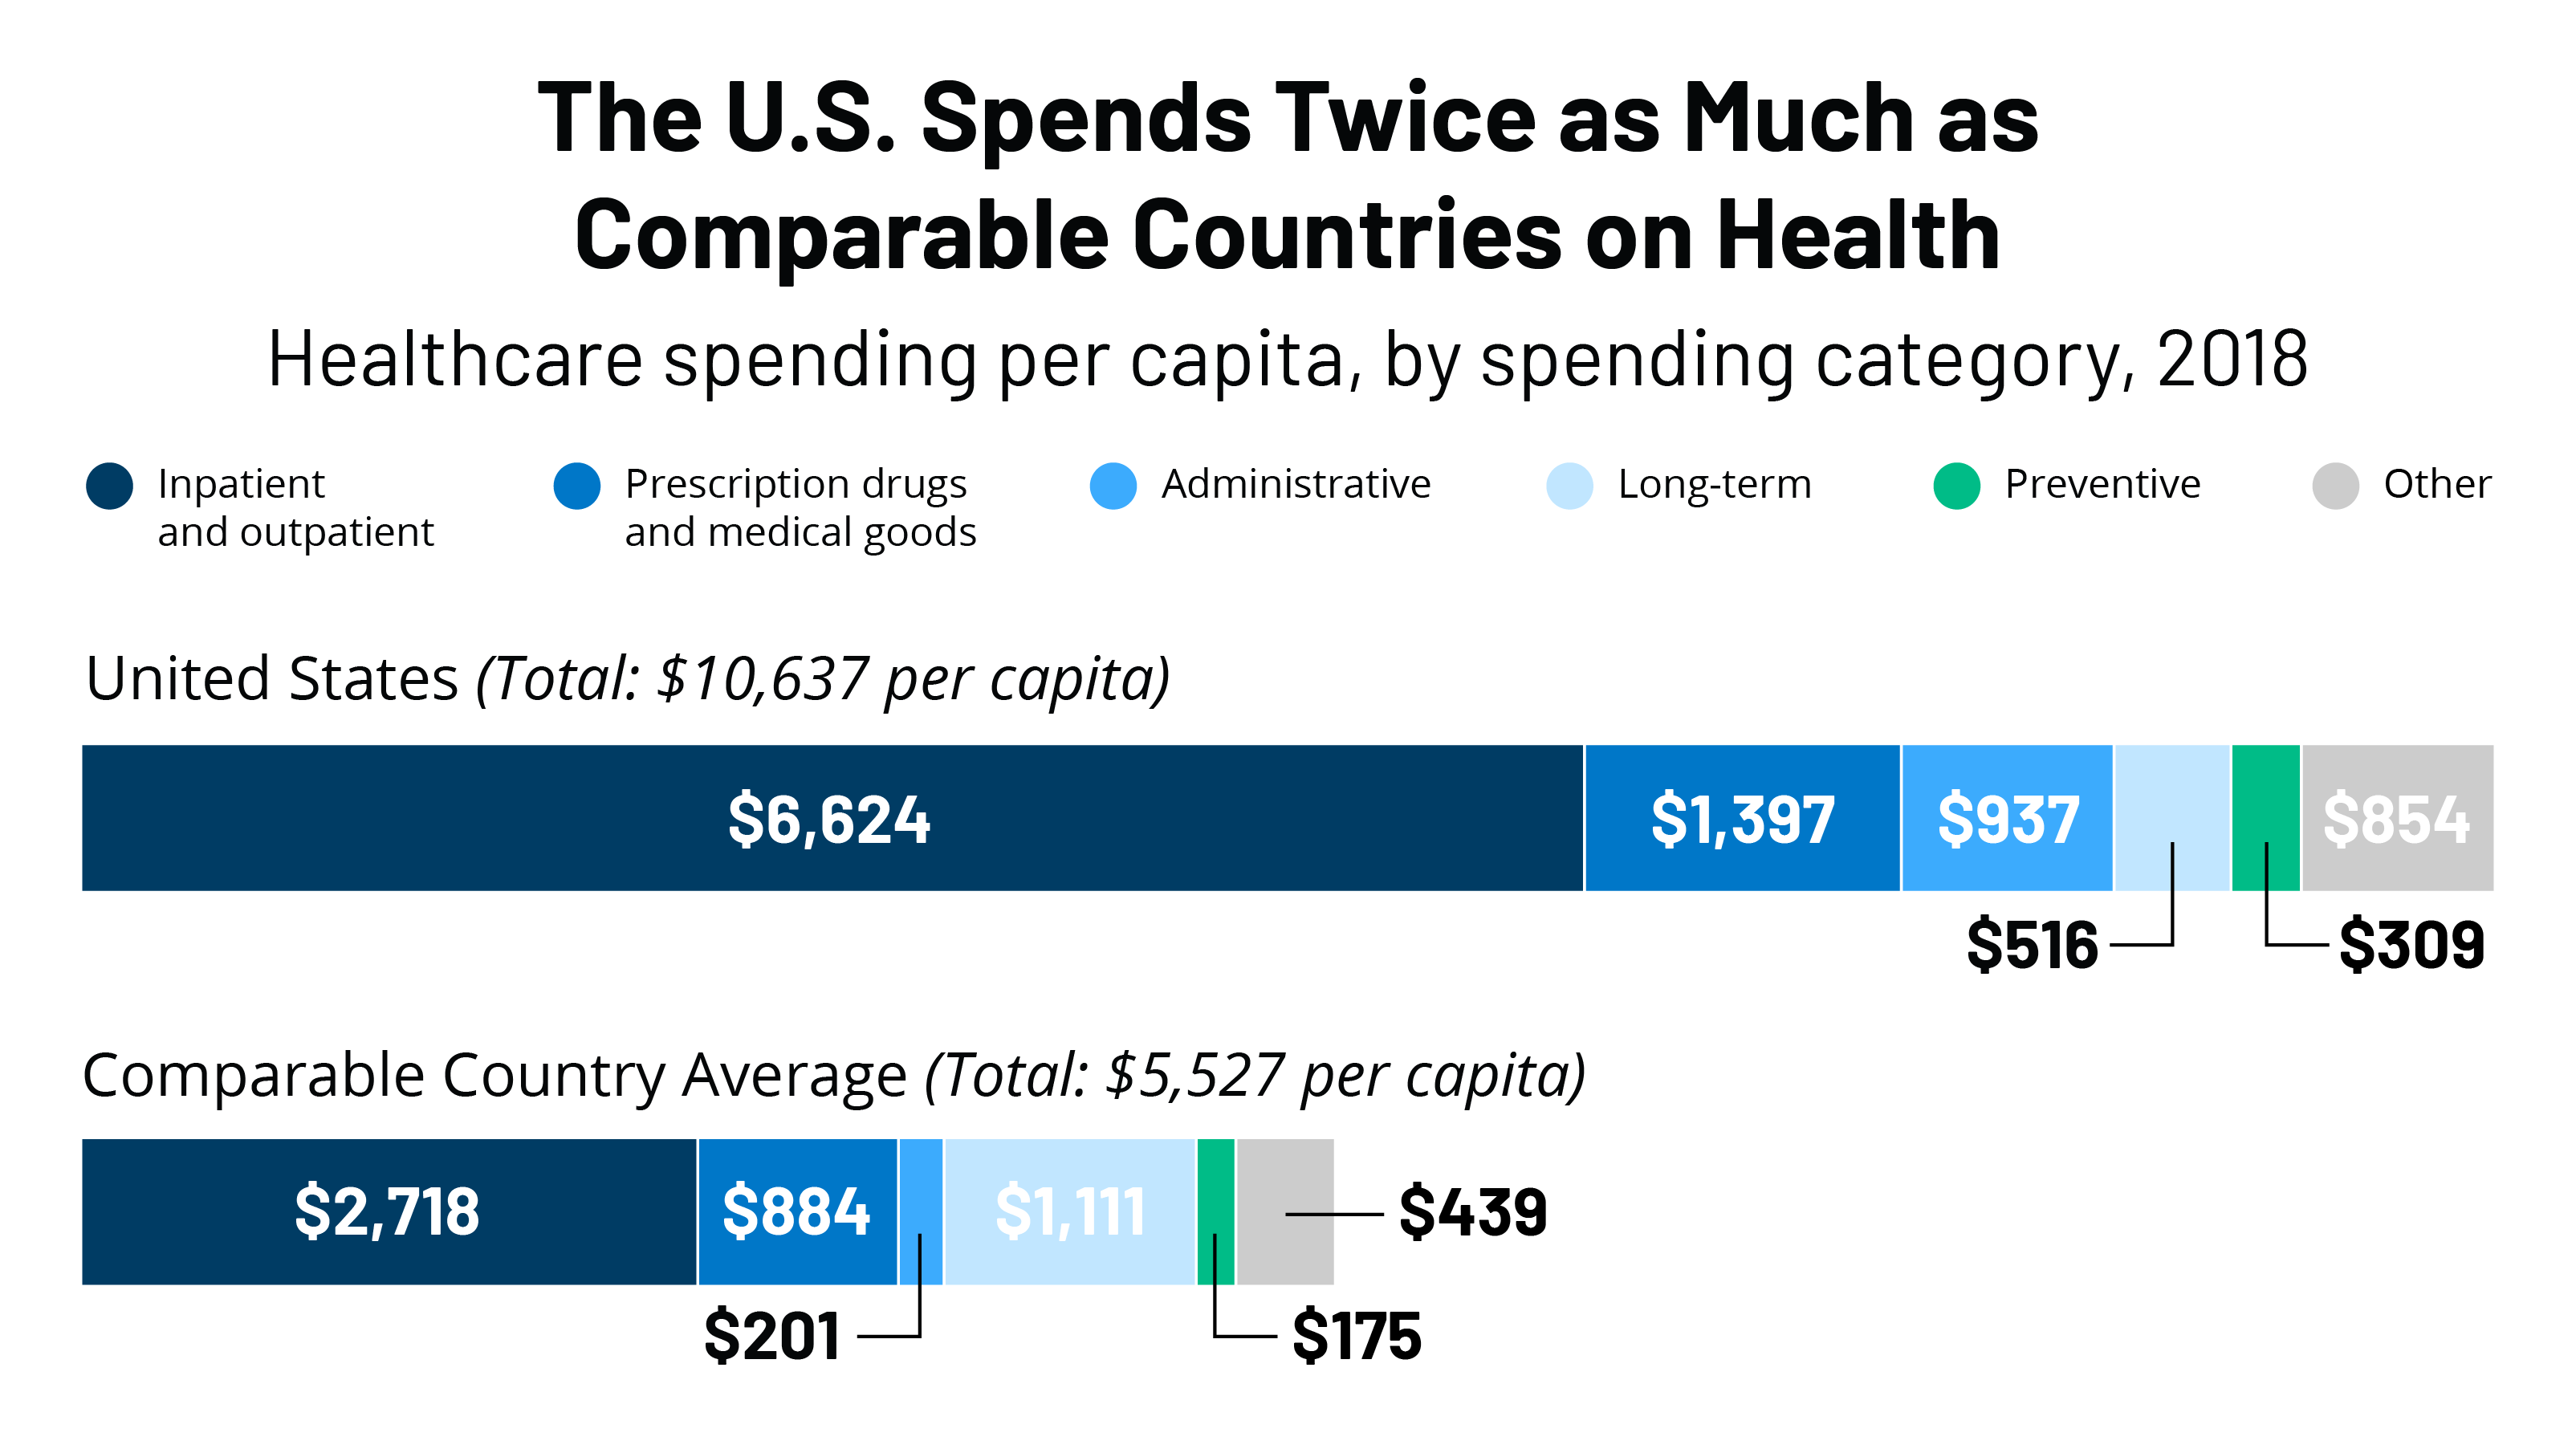 What drives health spending in the U.S. compared to other countries